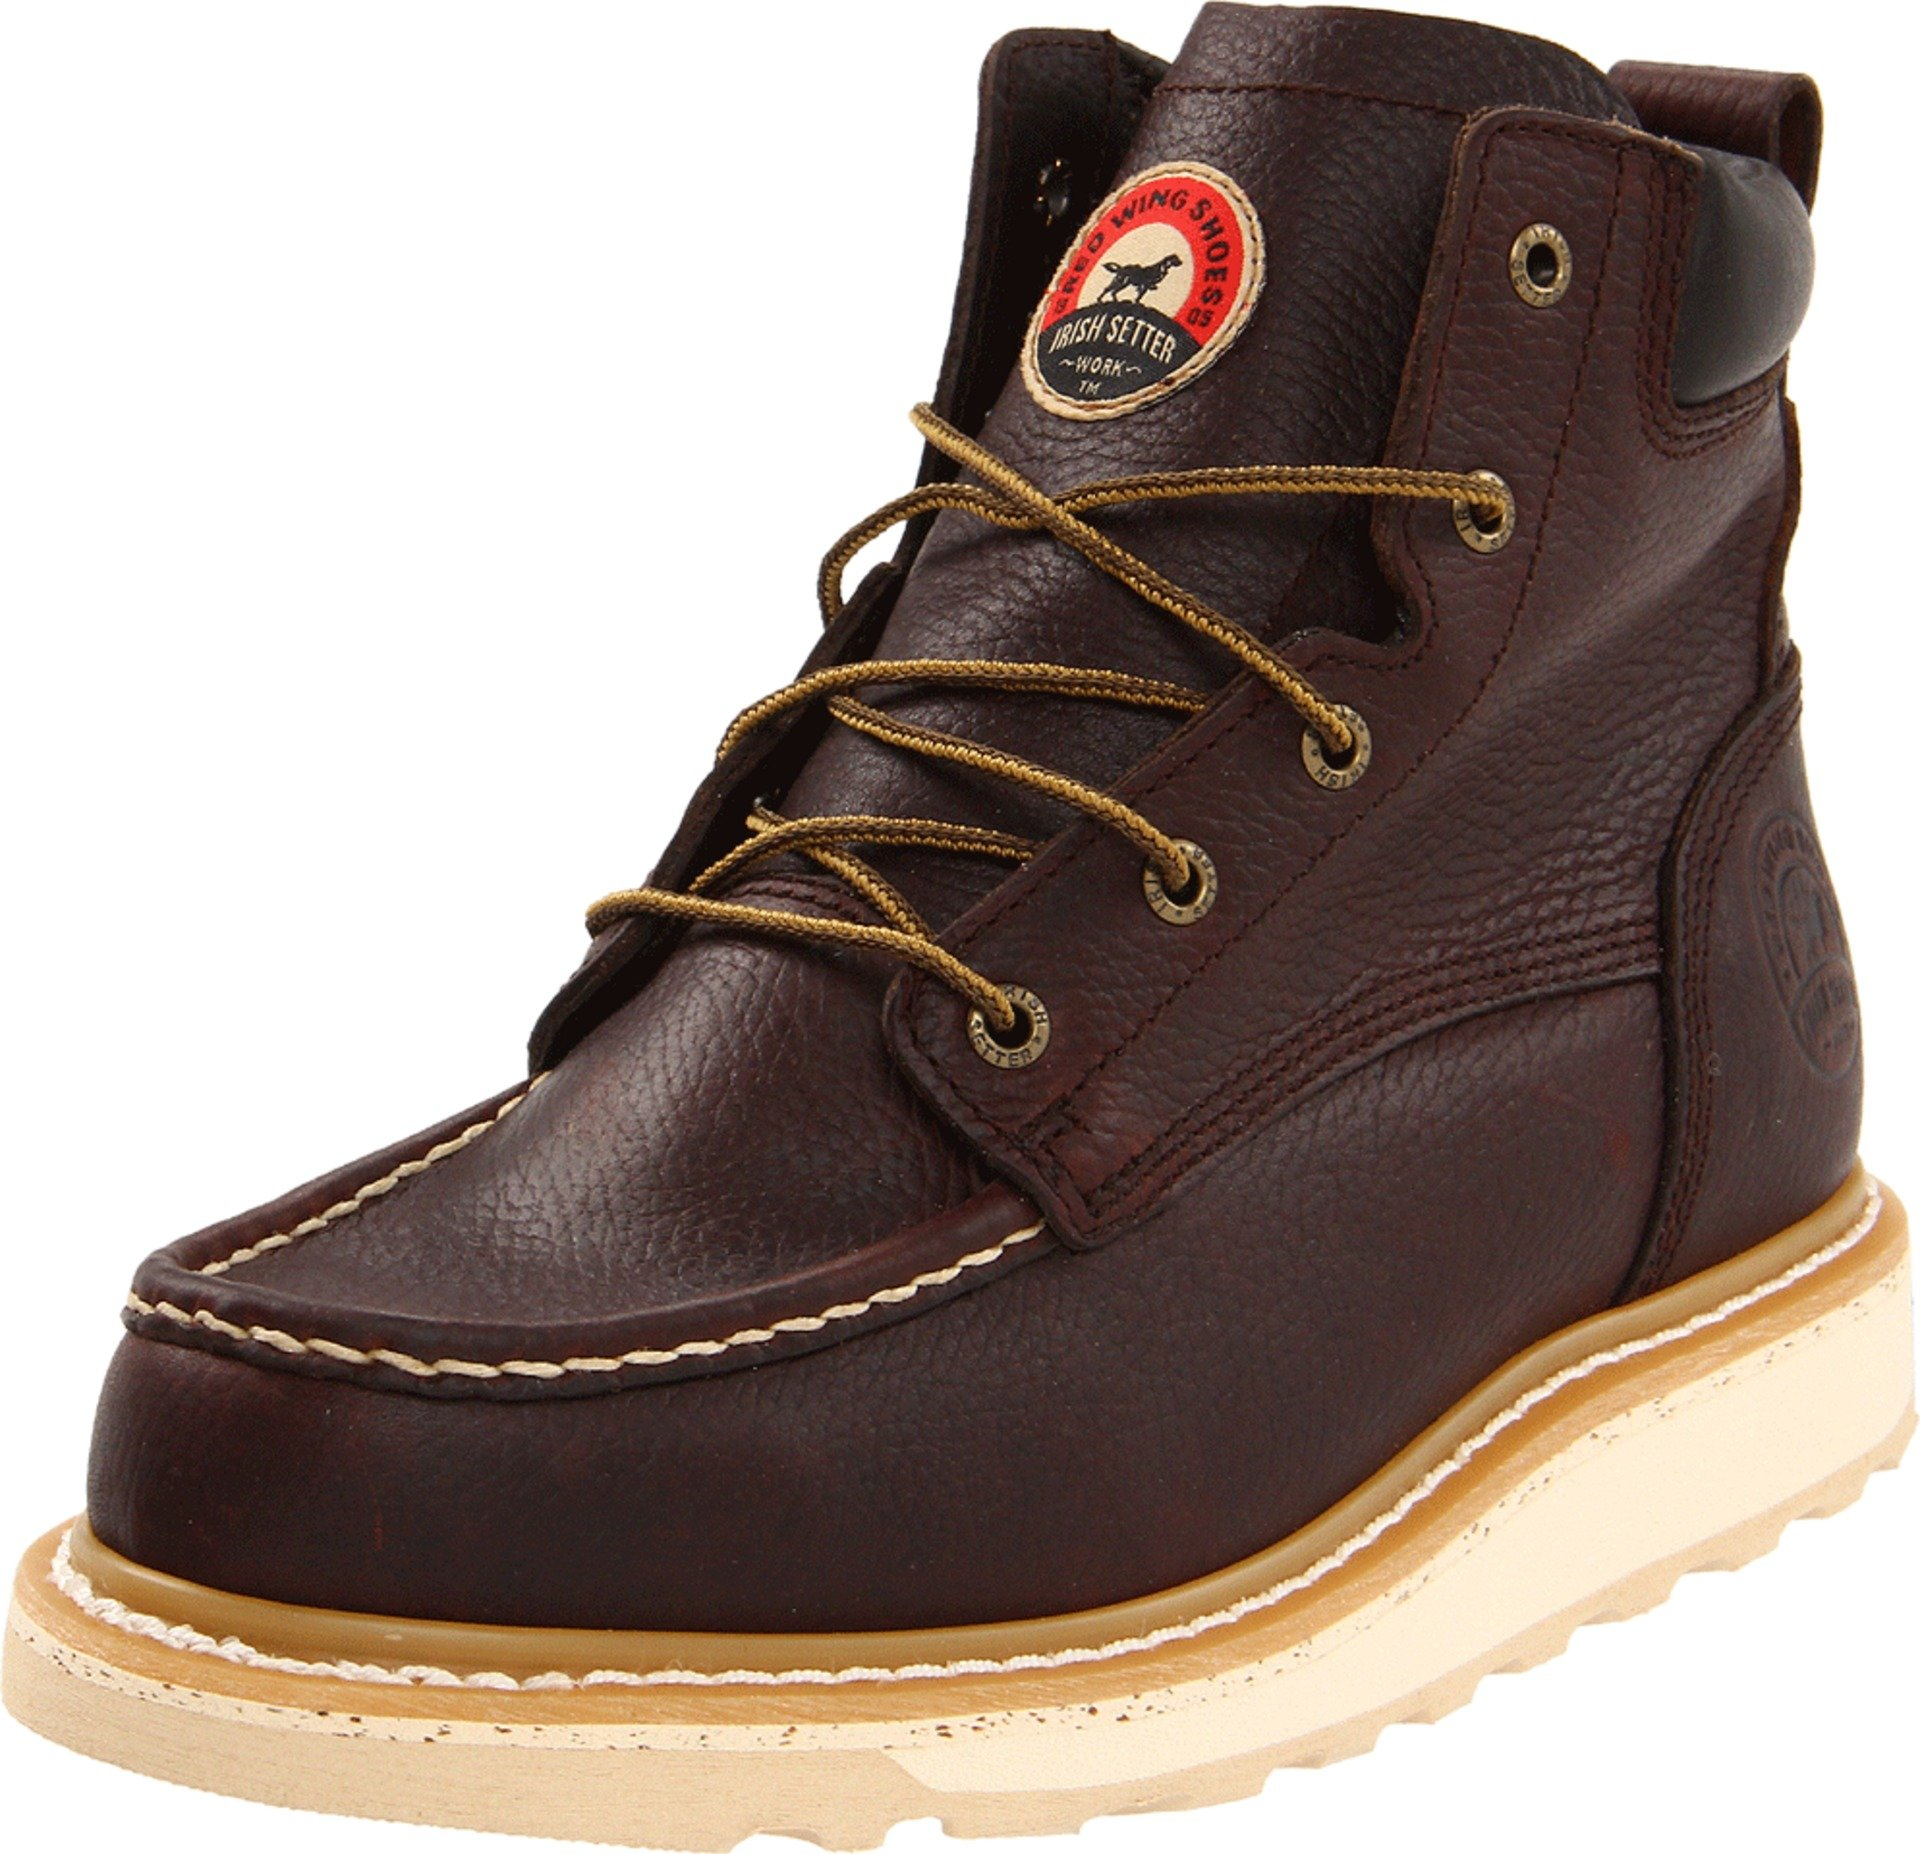 Irish Setter Men's 6'' 83605 Work Boot,Brown,7.5 D US